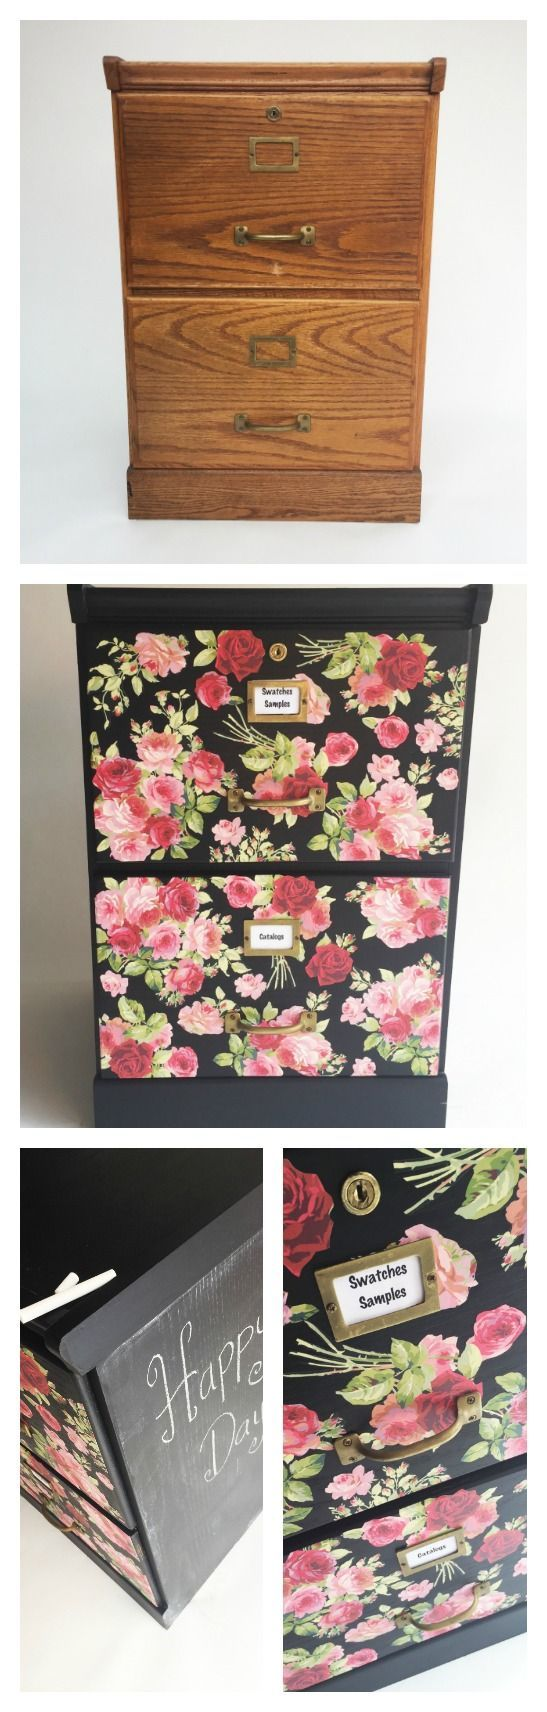 best 20 mod furniture ideas on pinterest retro furniture cathie steve rehab a thrift store file cabinet into a custom piece perfect for a home office in our latest furniture